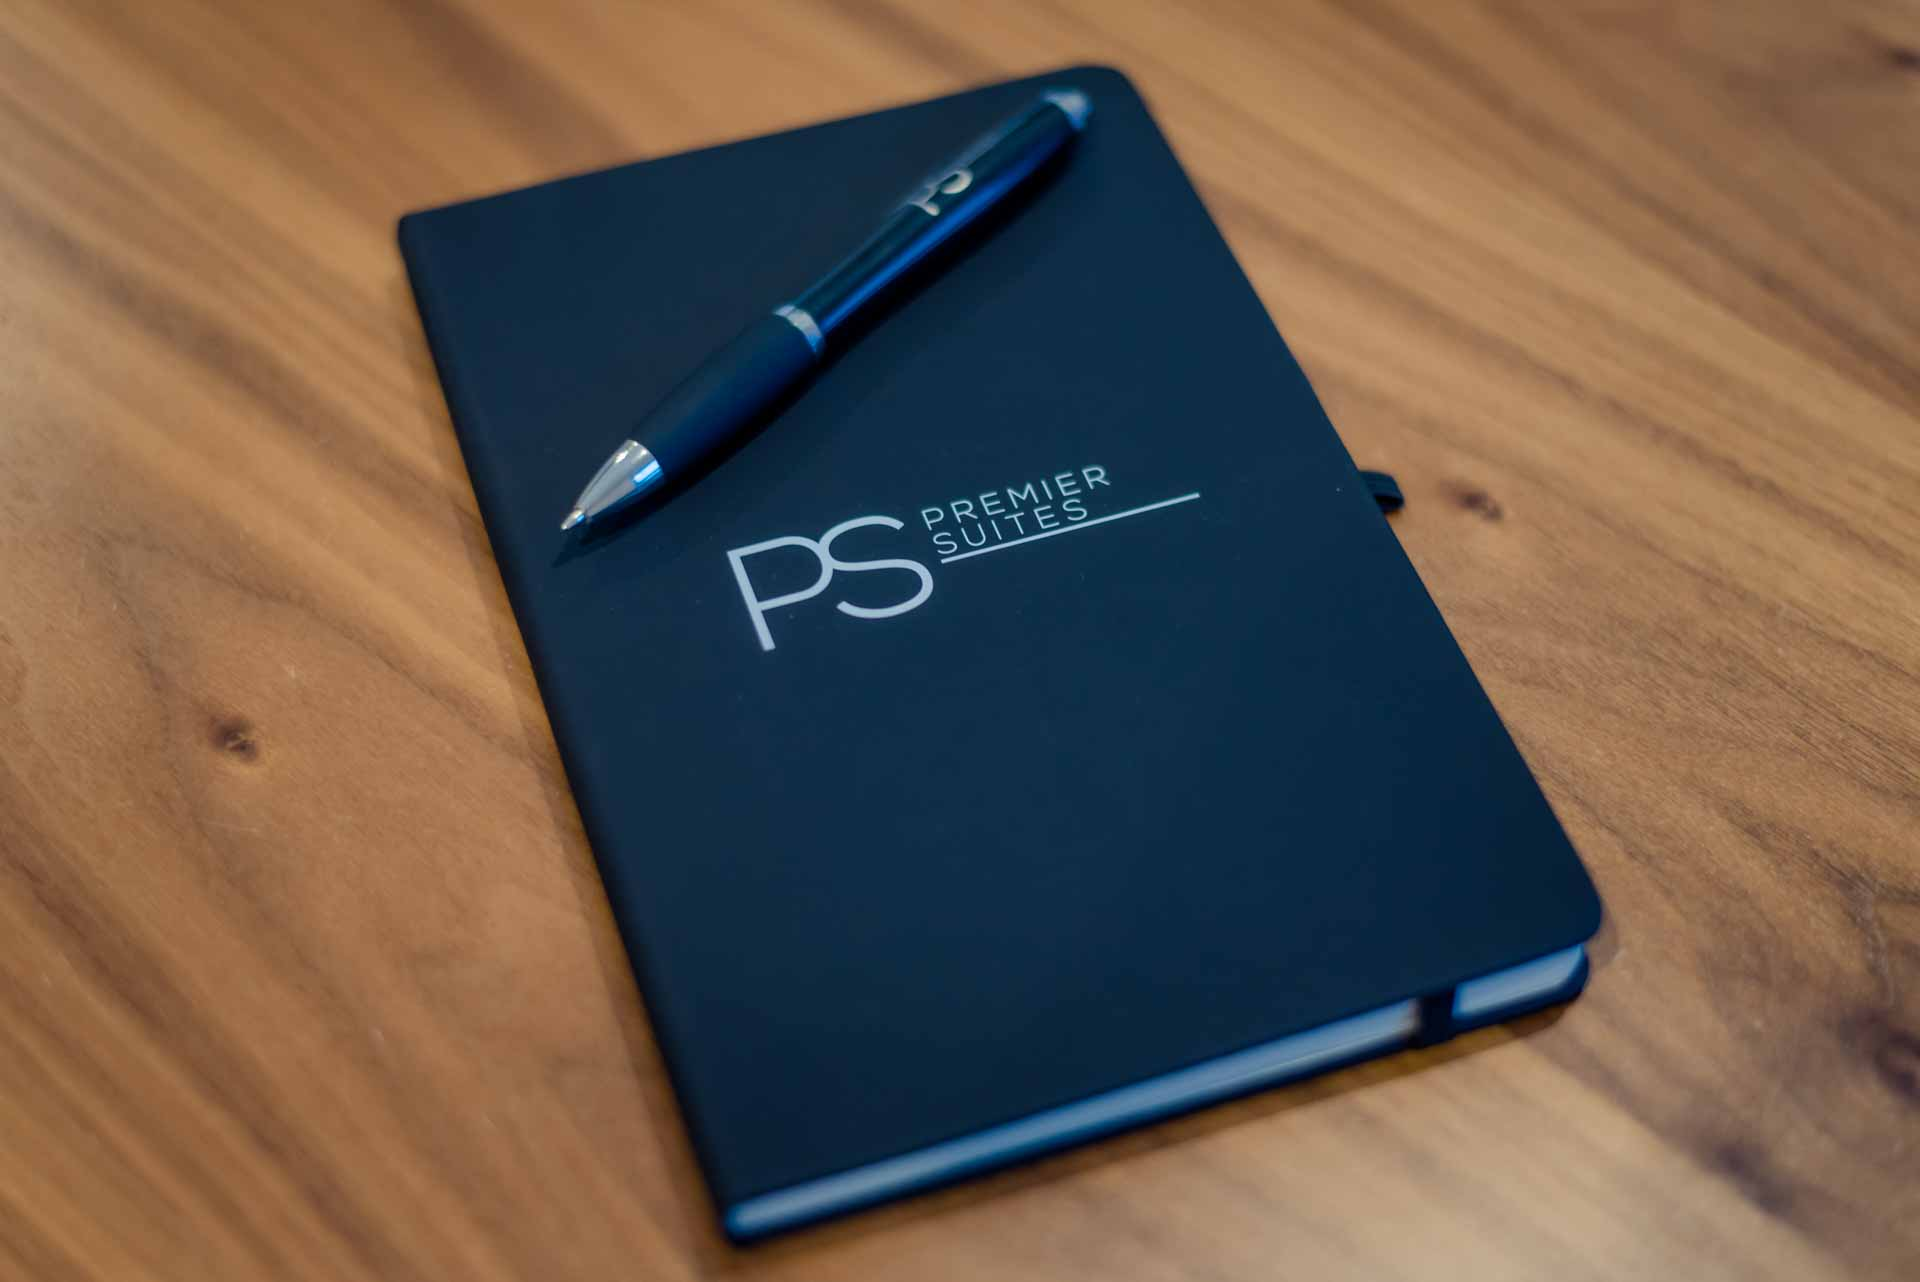 PREMIER SUITES Notepad PREMIER SUITES PLUS Glasgow George Square